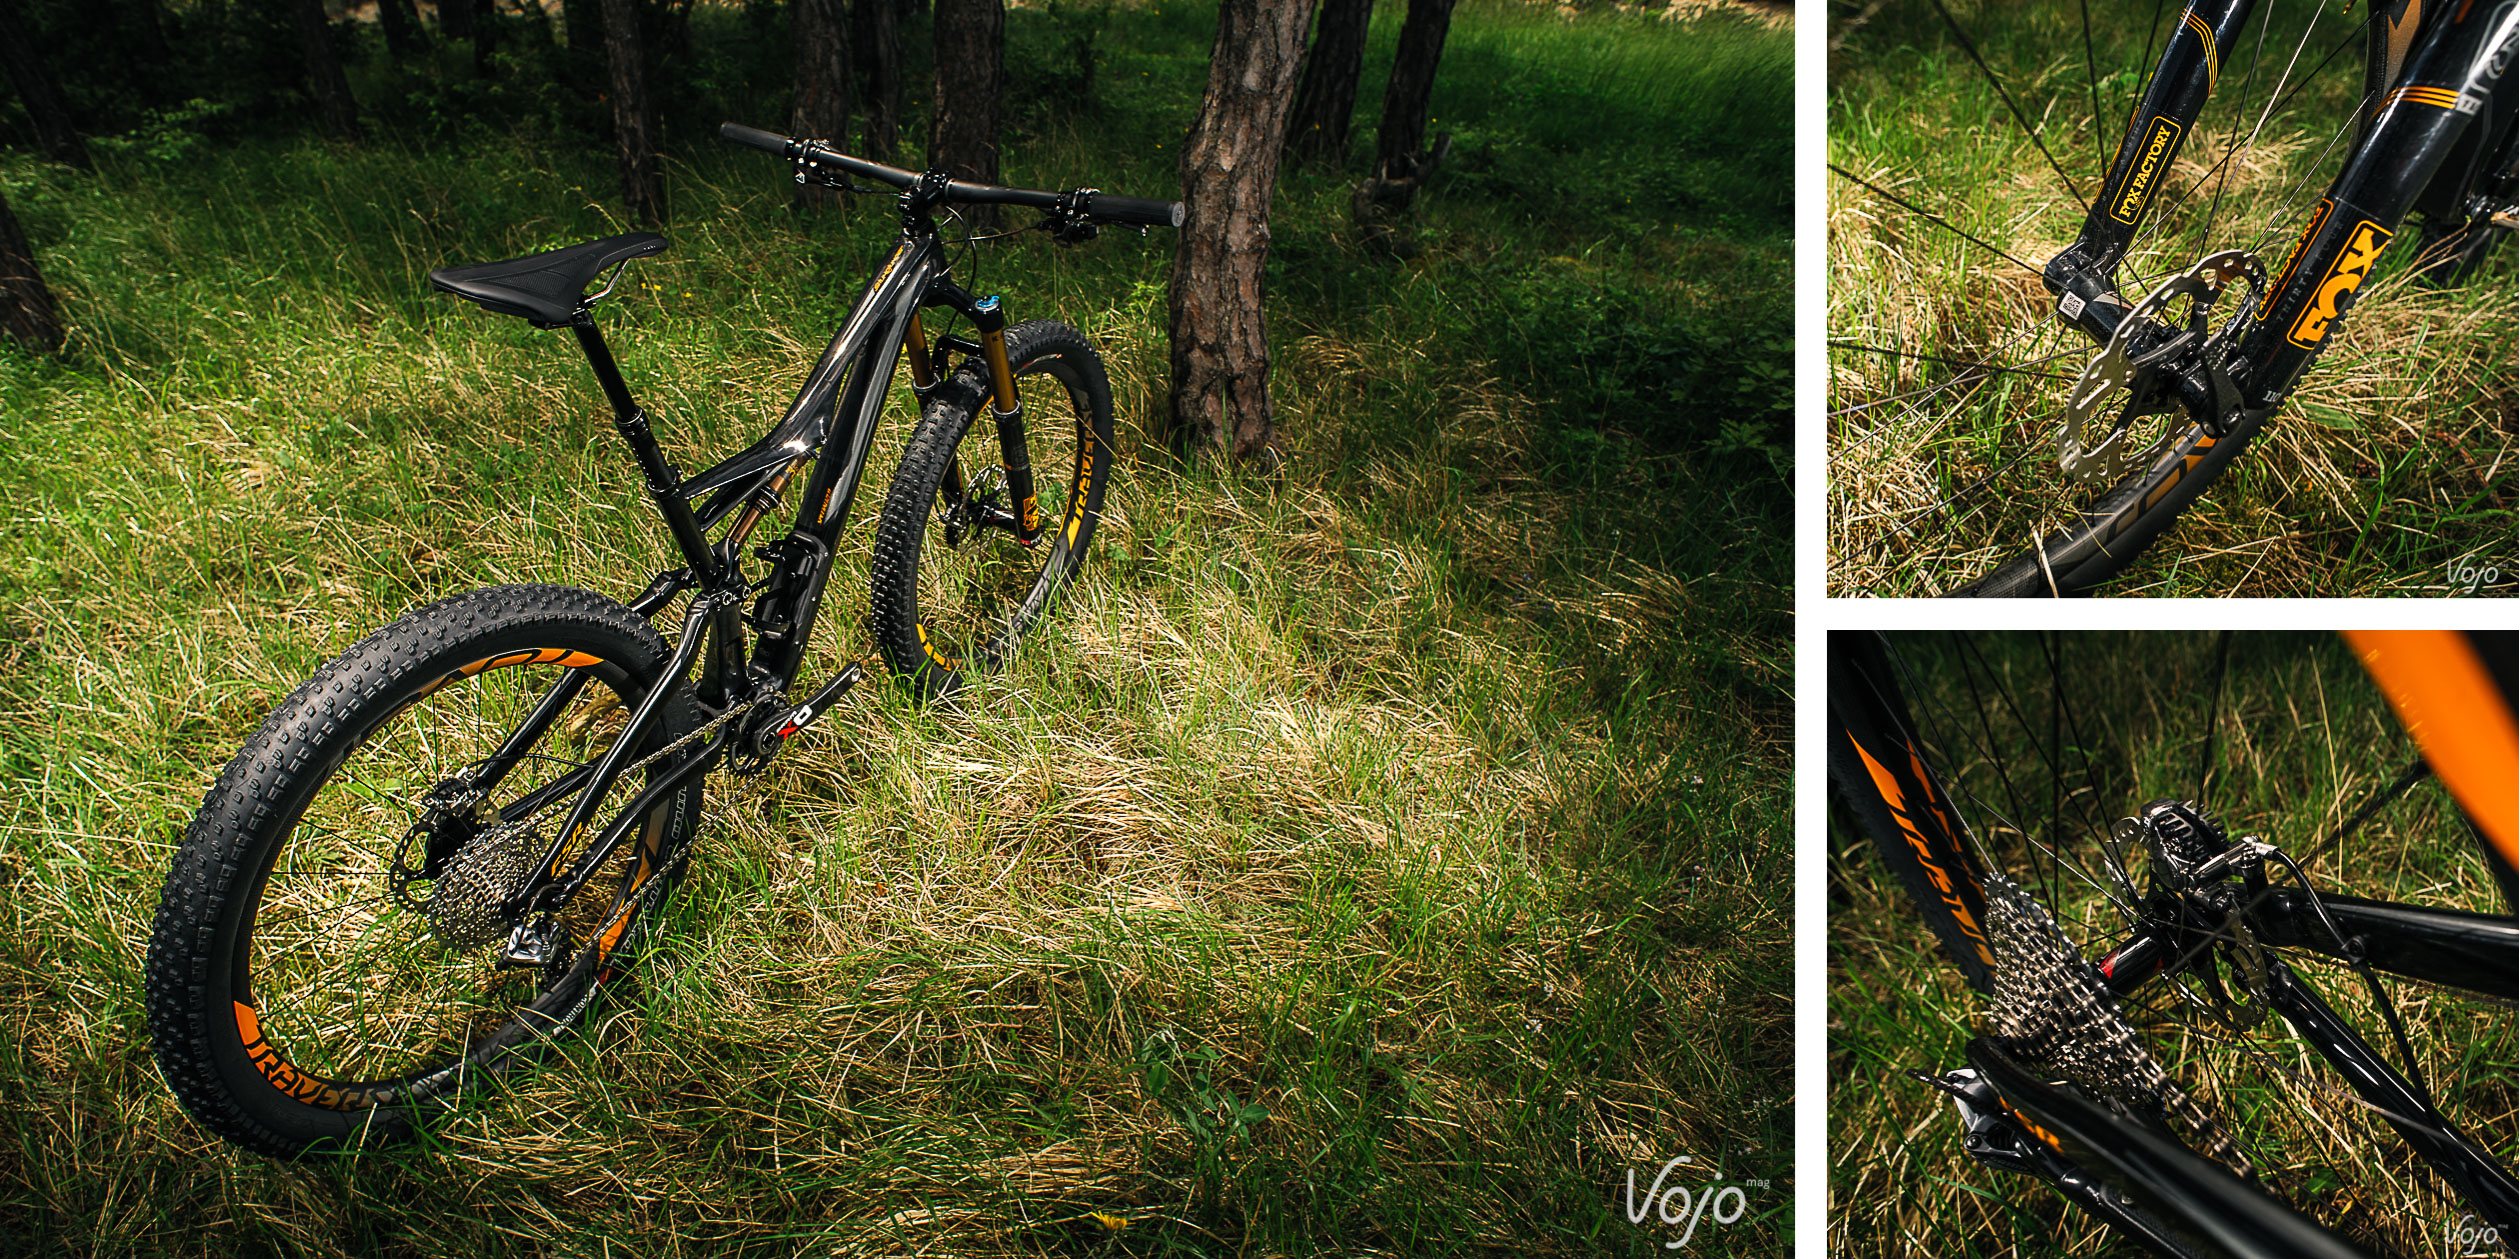 Compo_13_Specialized_Stumpjumper_2016_Swat_Copyright_OBeart_VojoMag-1